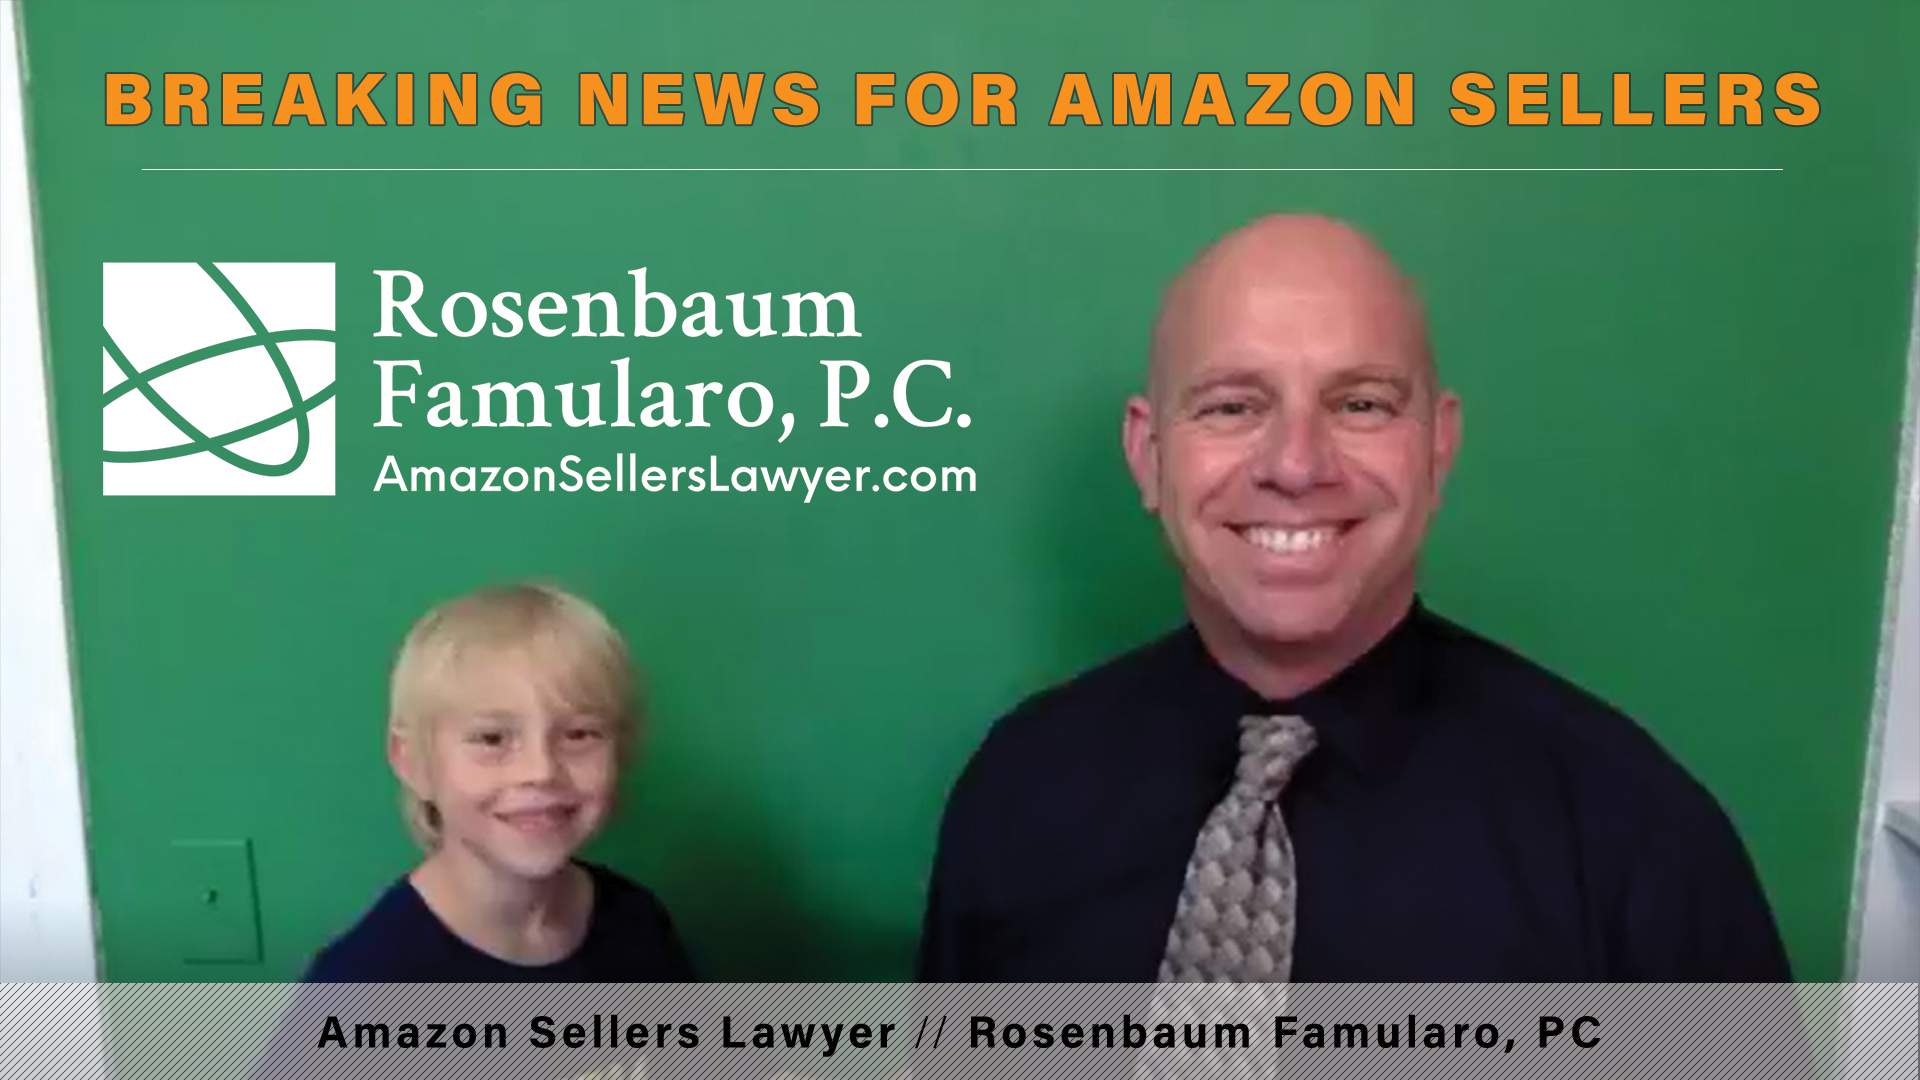 Breaking News for Amazon Sellers 7-16-18